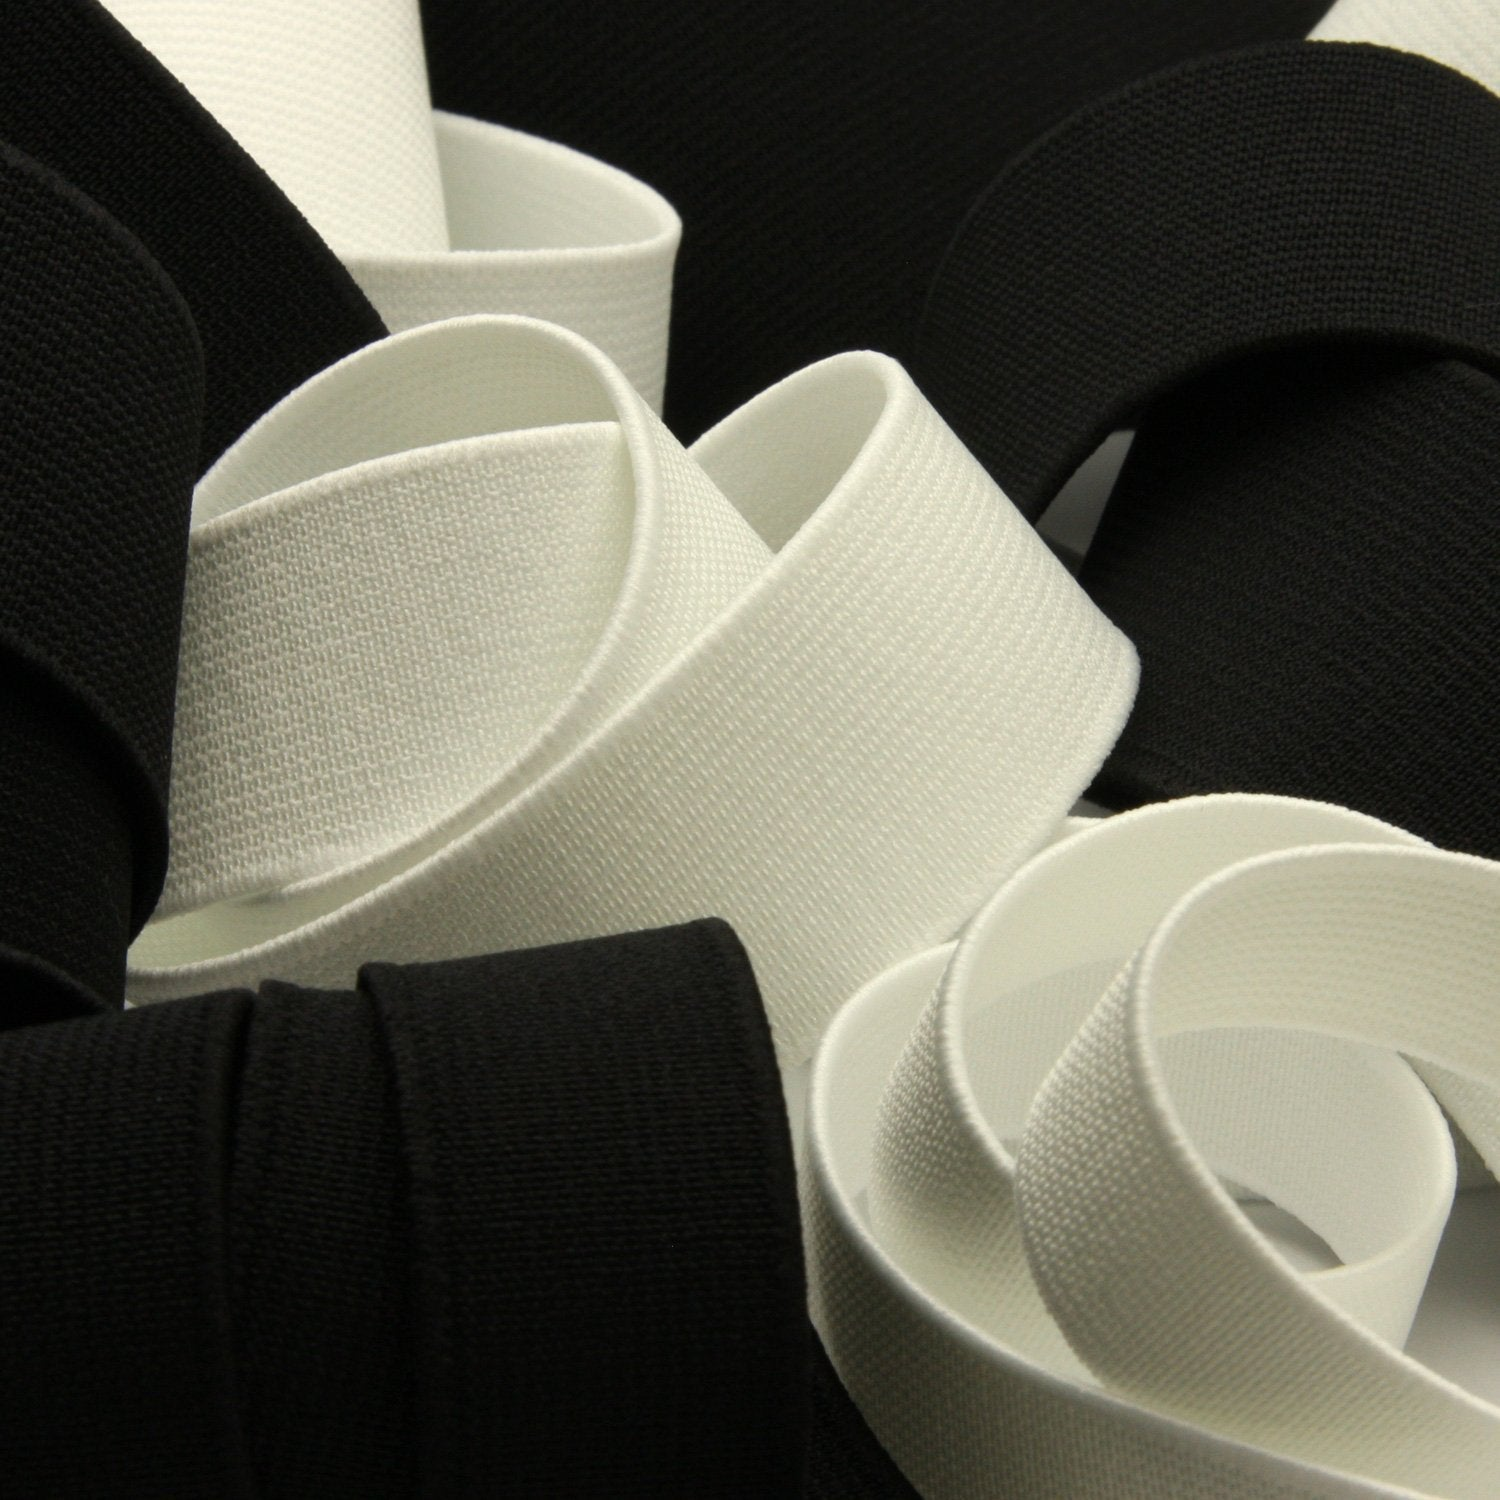 FUJIYAMA RIBBON [Wholesale] Soft Type Inside Belt 15mm 30 Meters Roll Off White